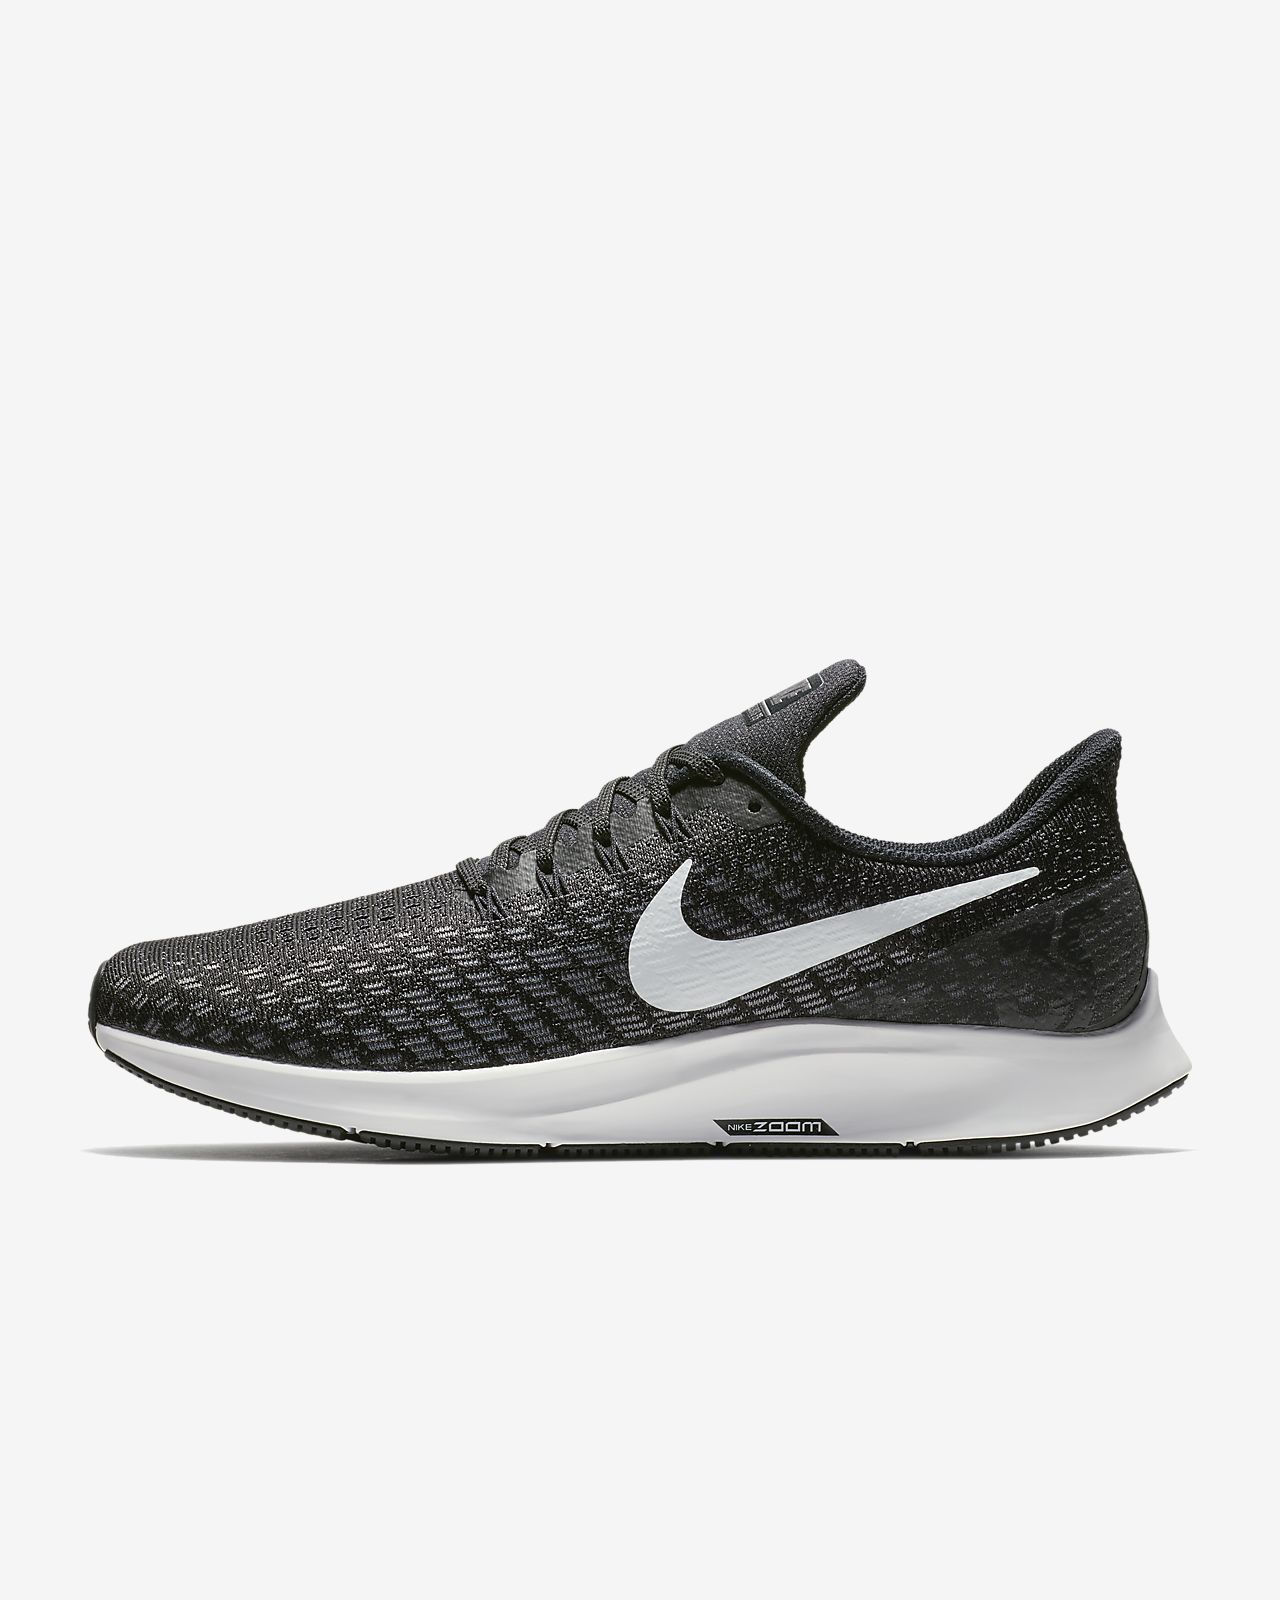 a28f0781533a Nike Air Zoom Pegasus 35 Men s Running Shoe. Nike.com GB